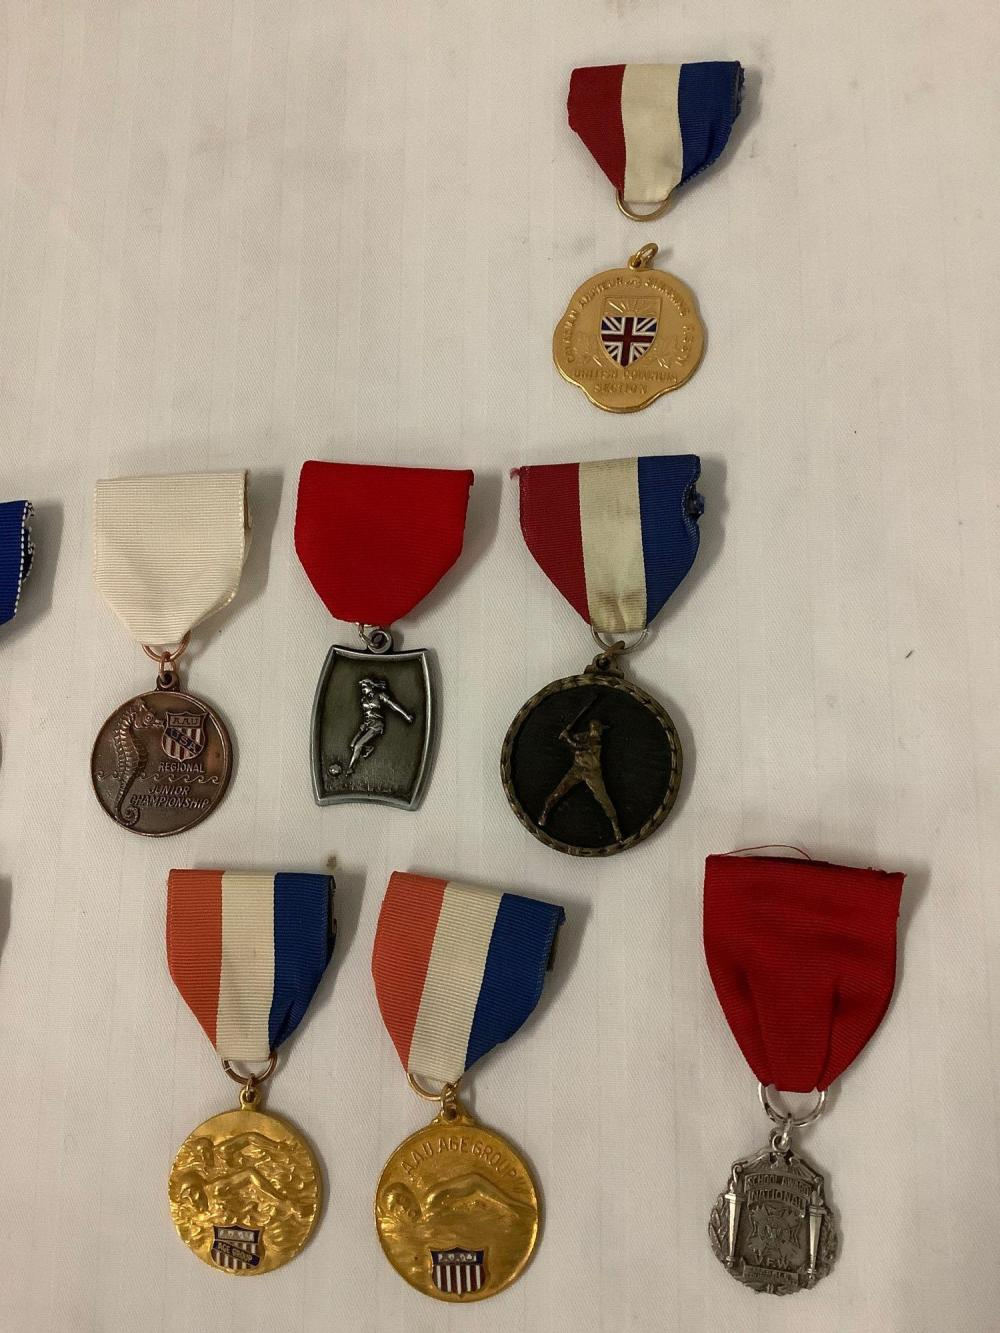 Lot 271: 15 vintage sports achievement medals - AAU Regional Junior champ swimming, womens soccer etc